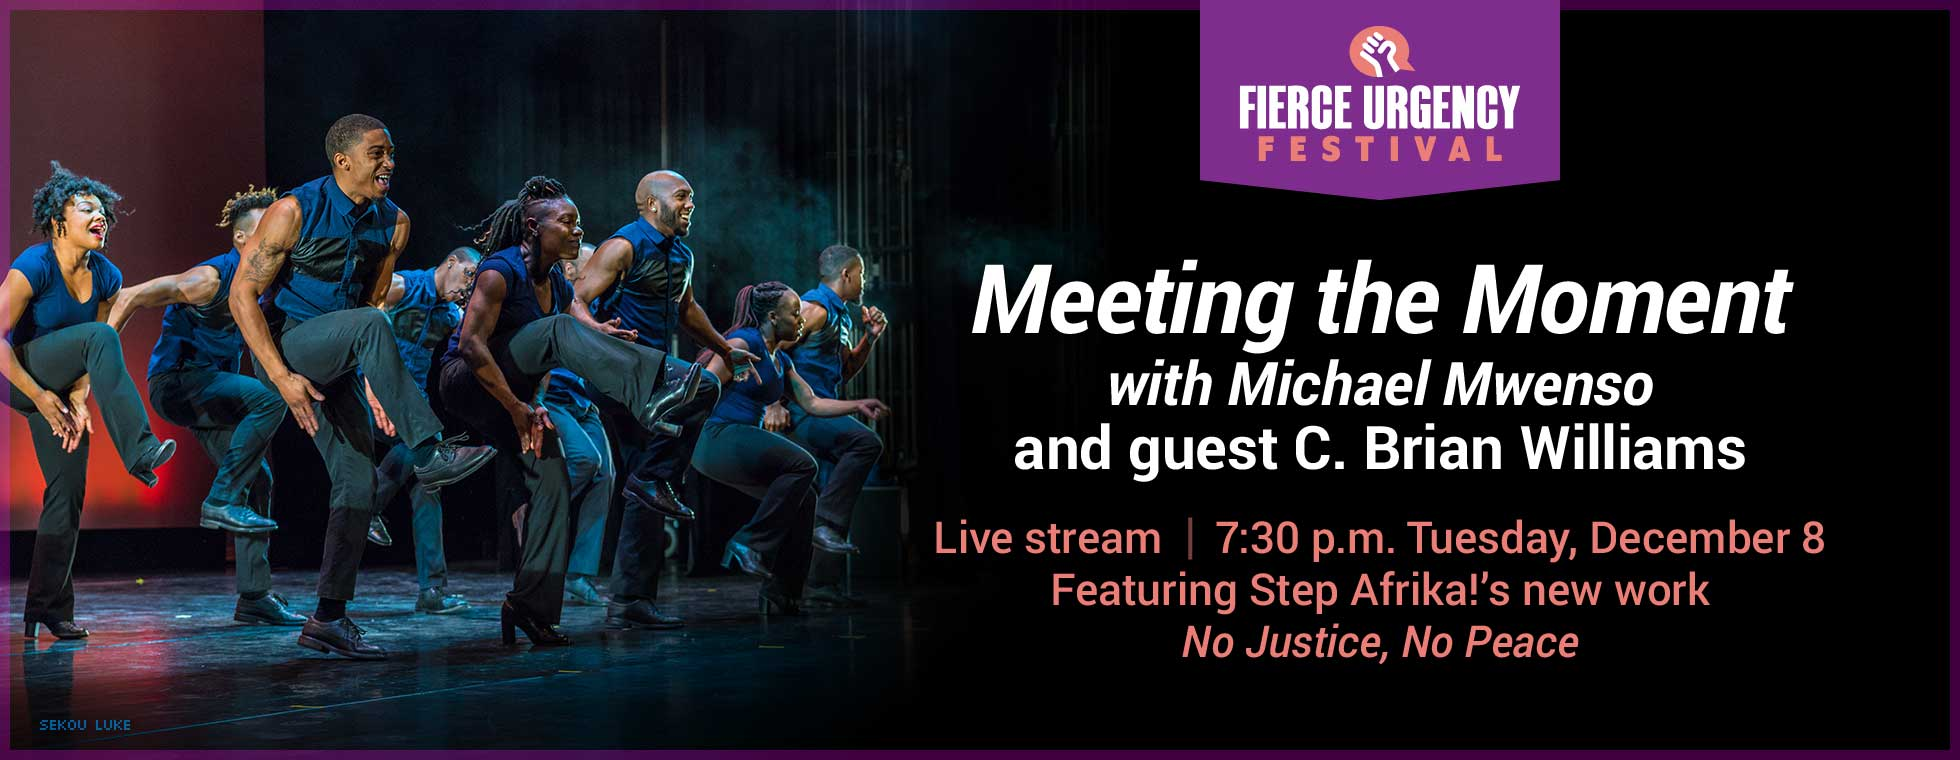 Meeting the Moment with Michael Mwenso and guest C. Brian Williams. Live stream 7:30 p.m. Tuesday, December 8, 2020. Featuring Step Afrika's new work No Justice, No Peace.